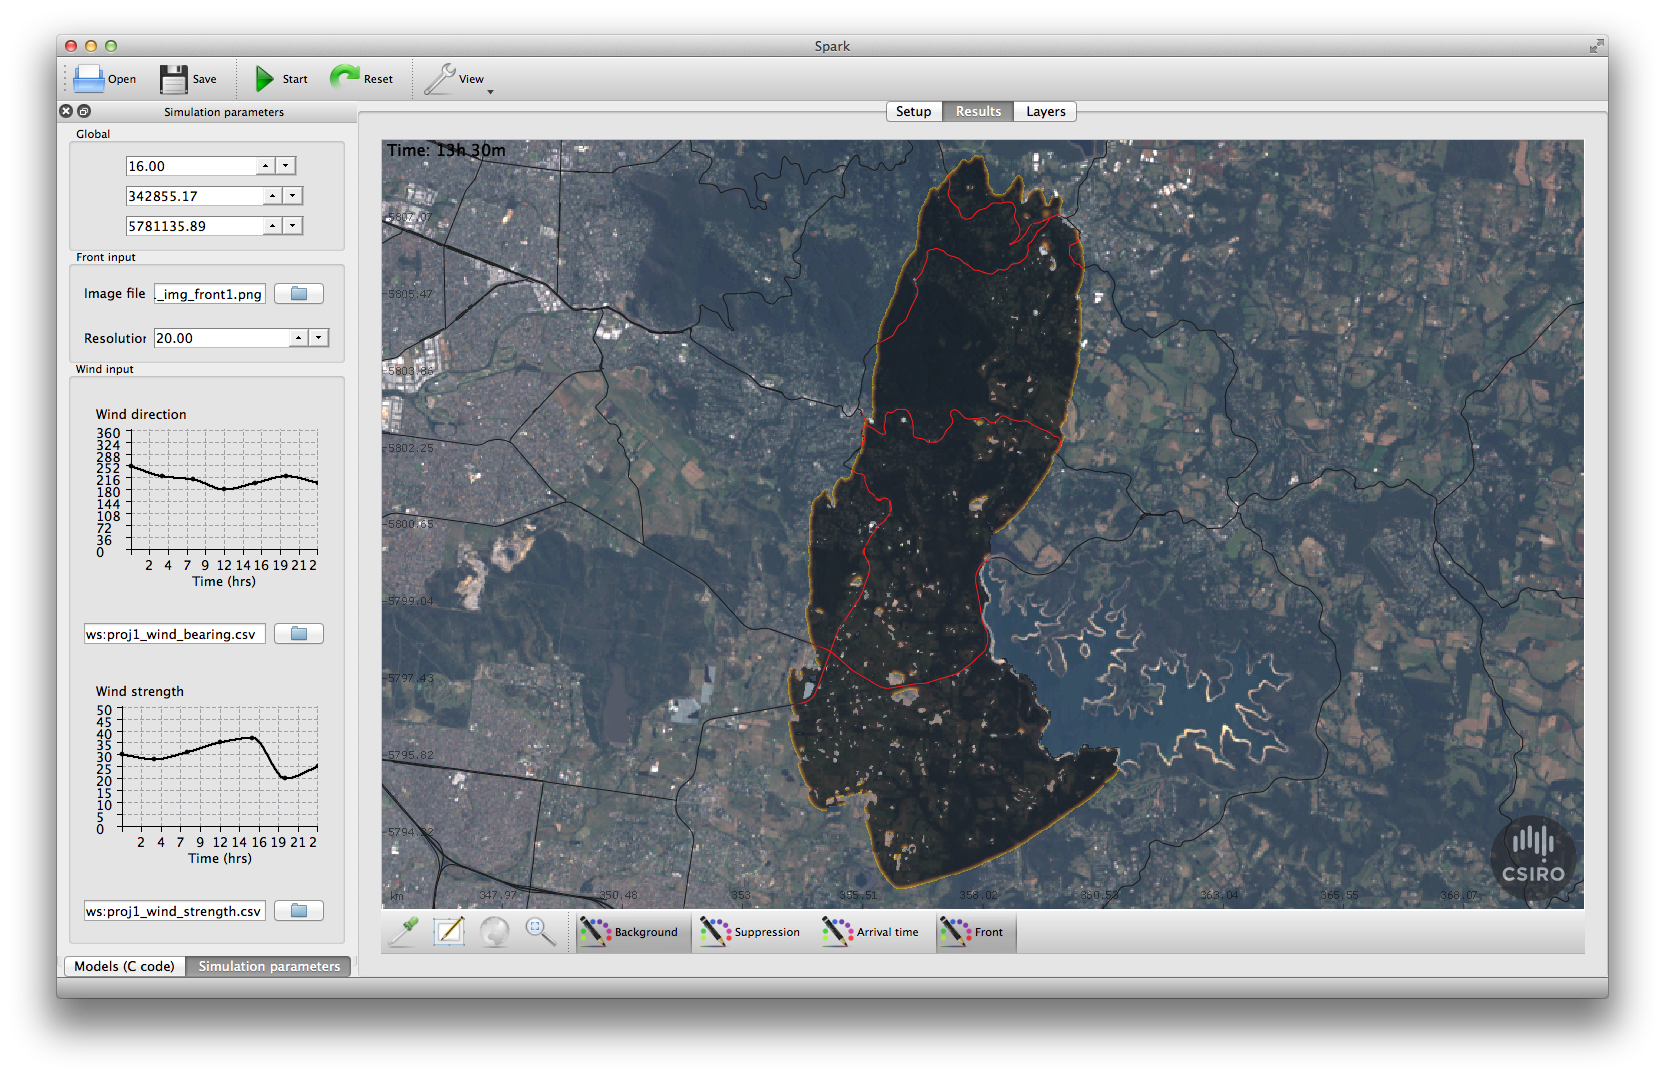 Screenshot of Spark bushfire prediction software showing a map overlay of predicted bushfire spread based on the input of environmental data via the tables on the right hand side.